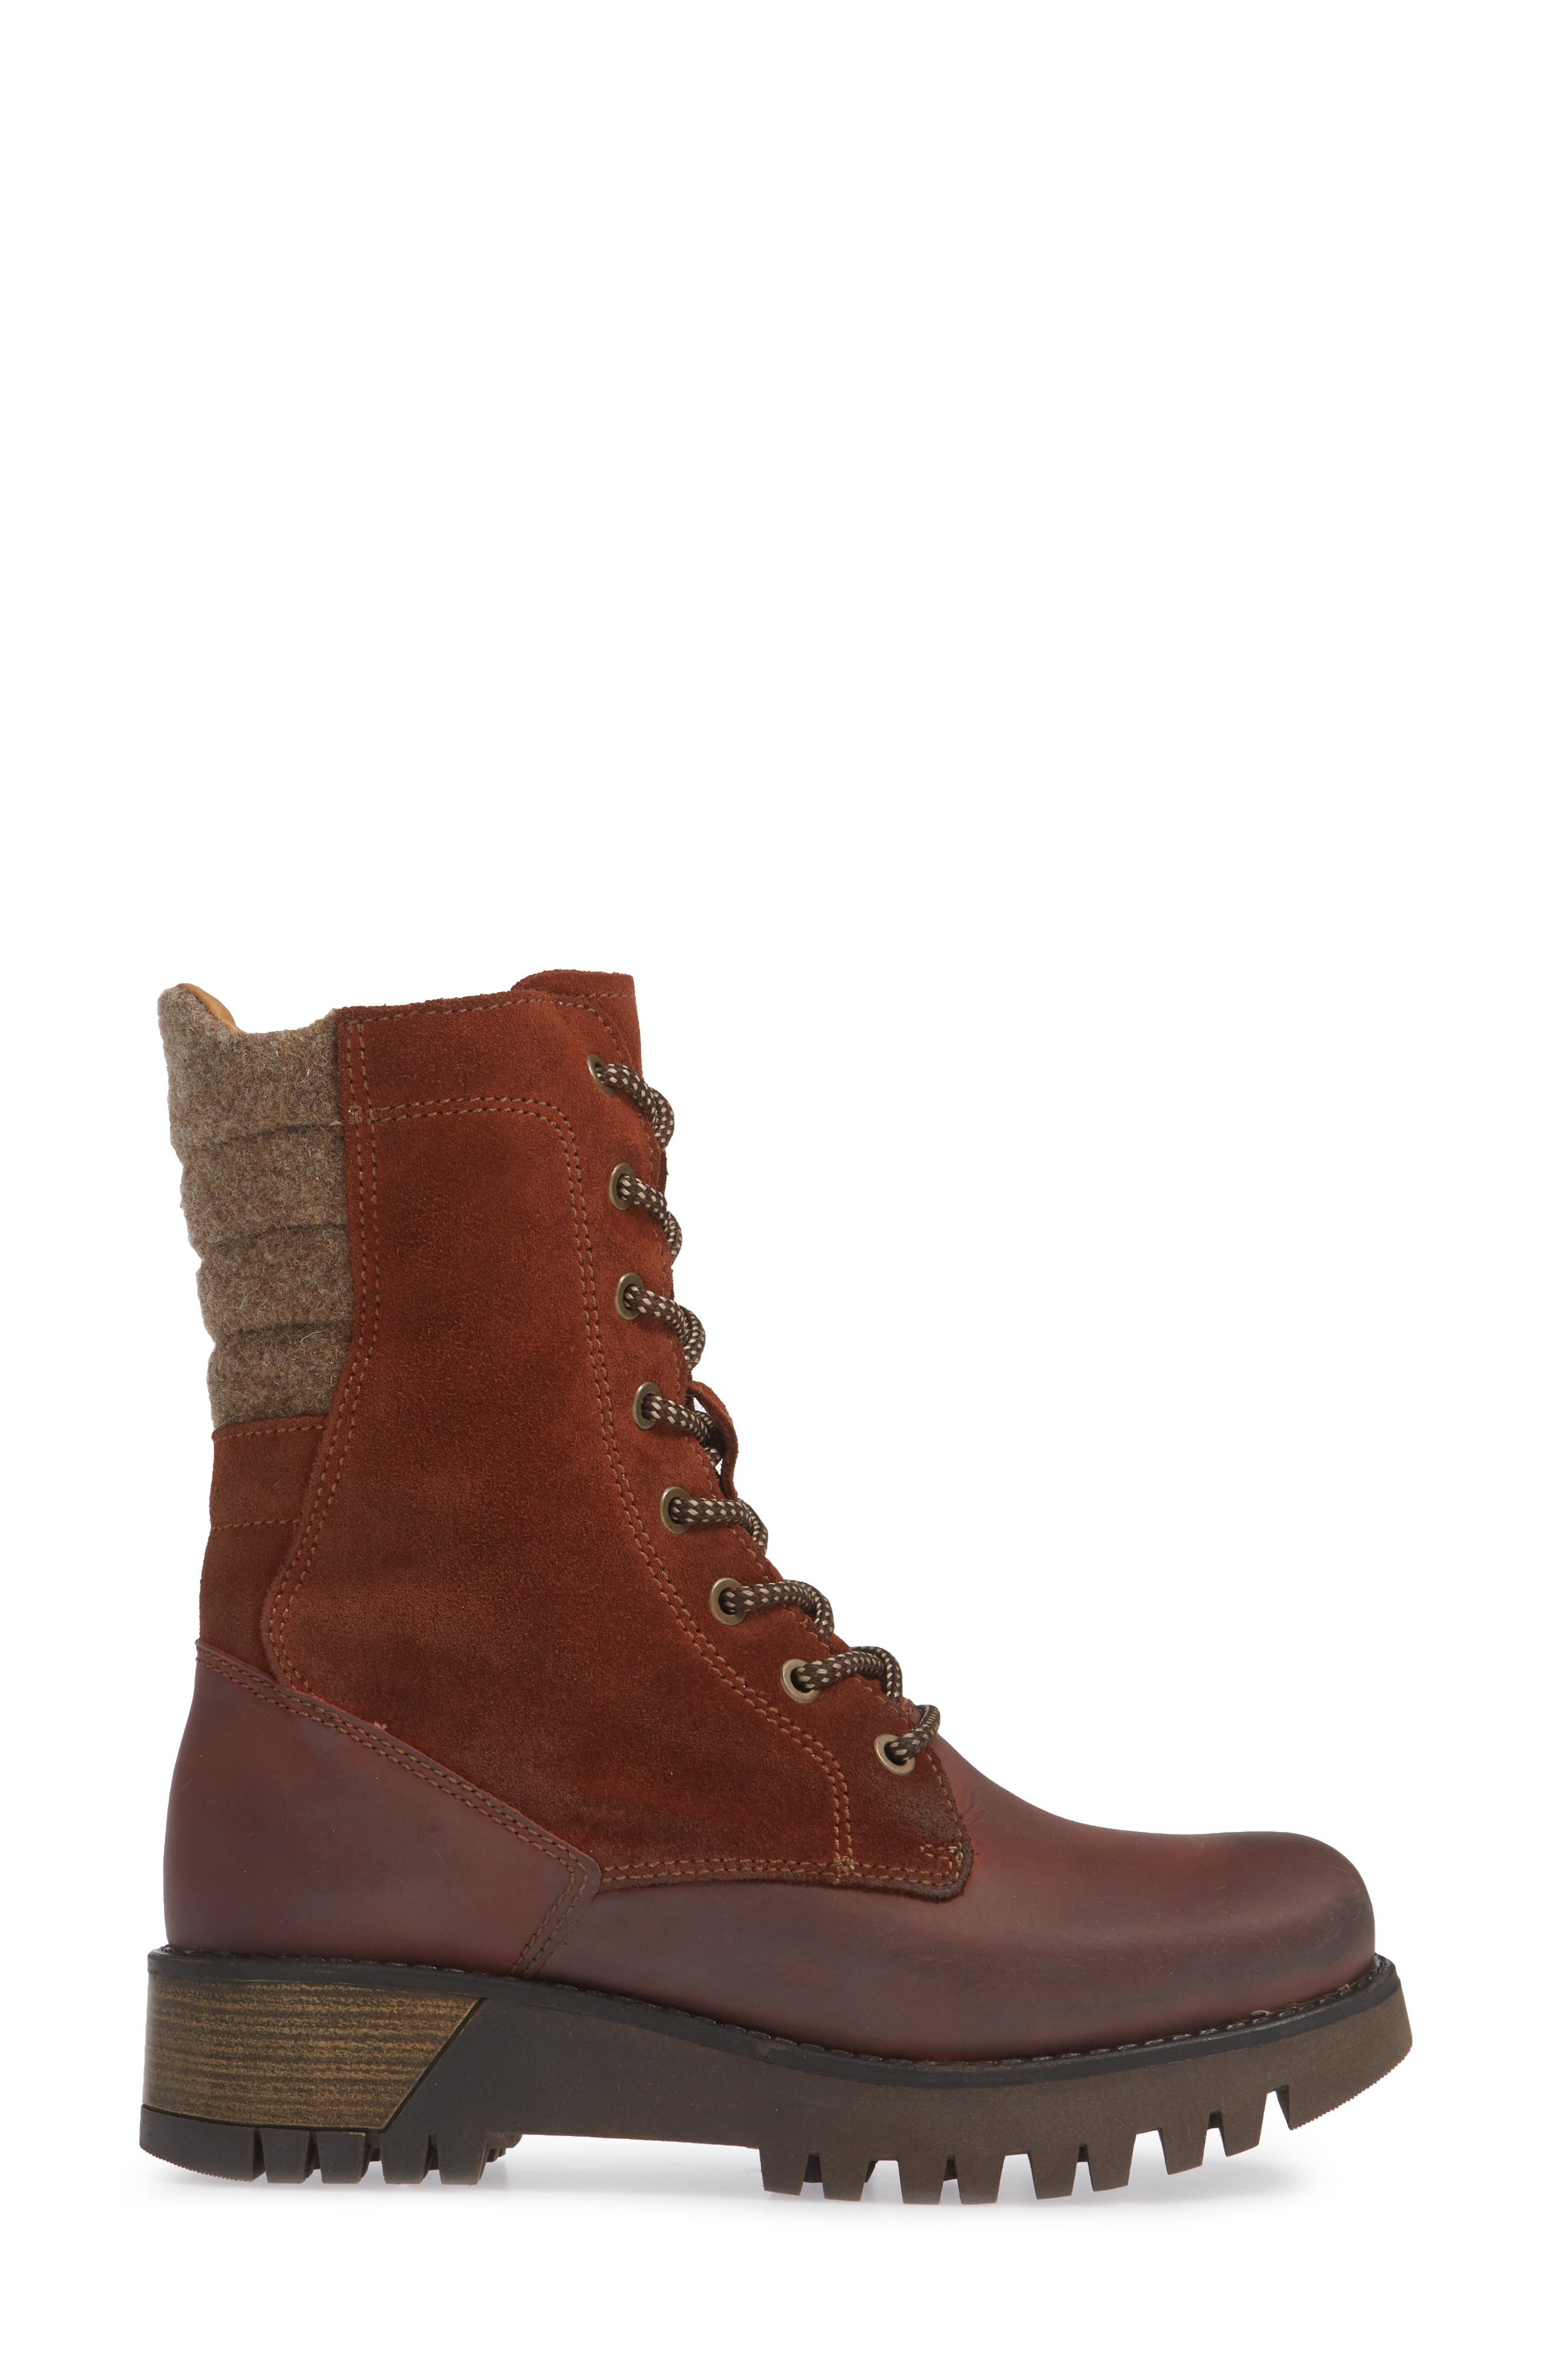 BOS. & CO.,                             Guide Waterproof & Insulated Hiking Boot,                             Alternate thumbnail 3, color,                             RUST SUEDE